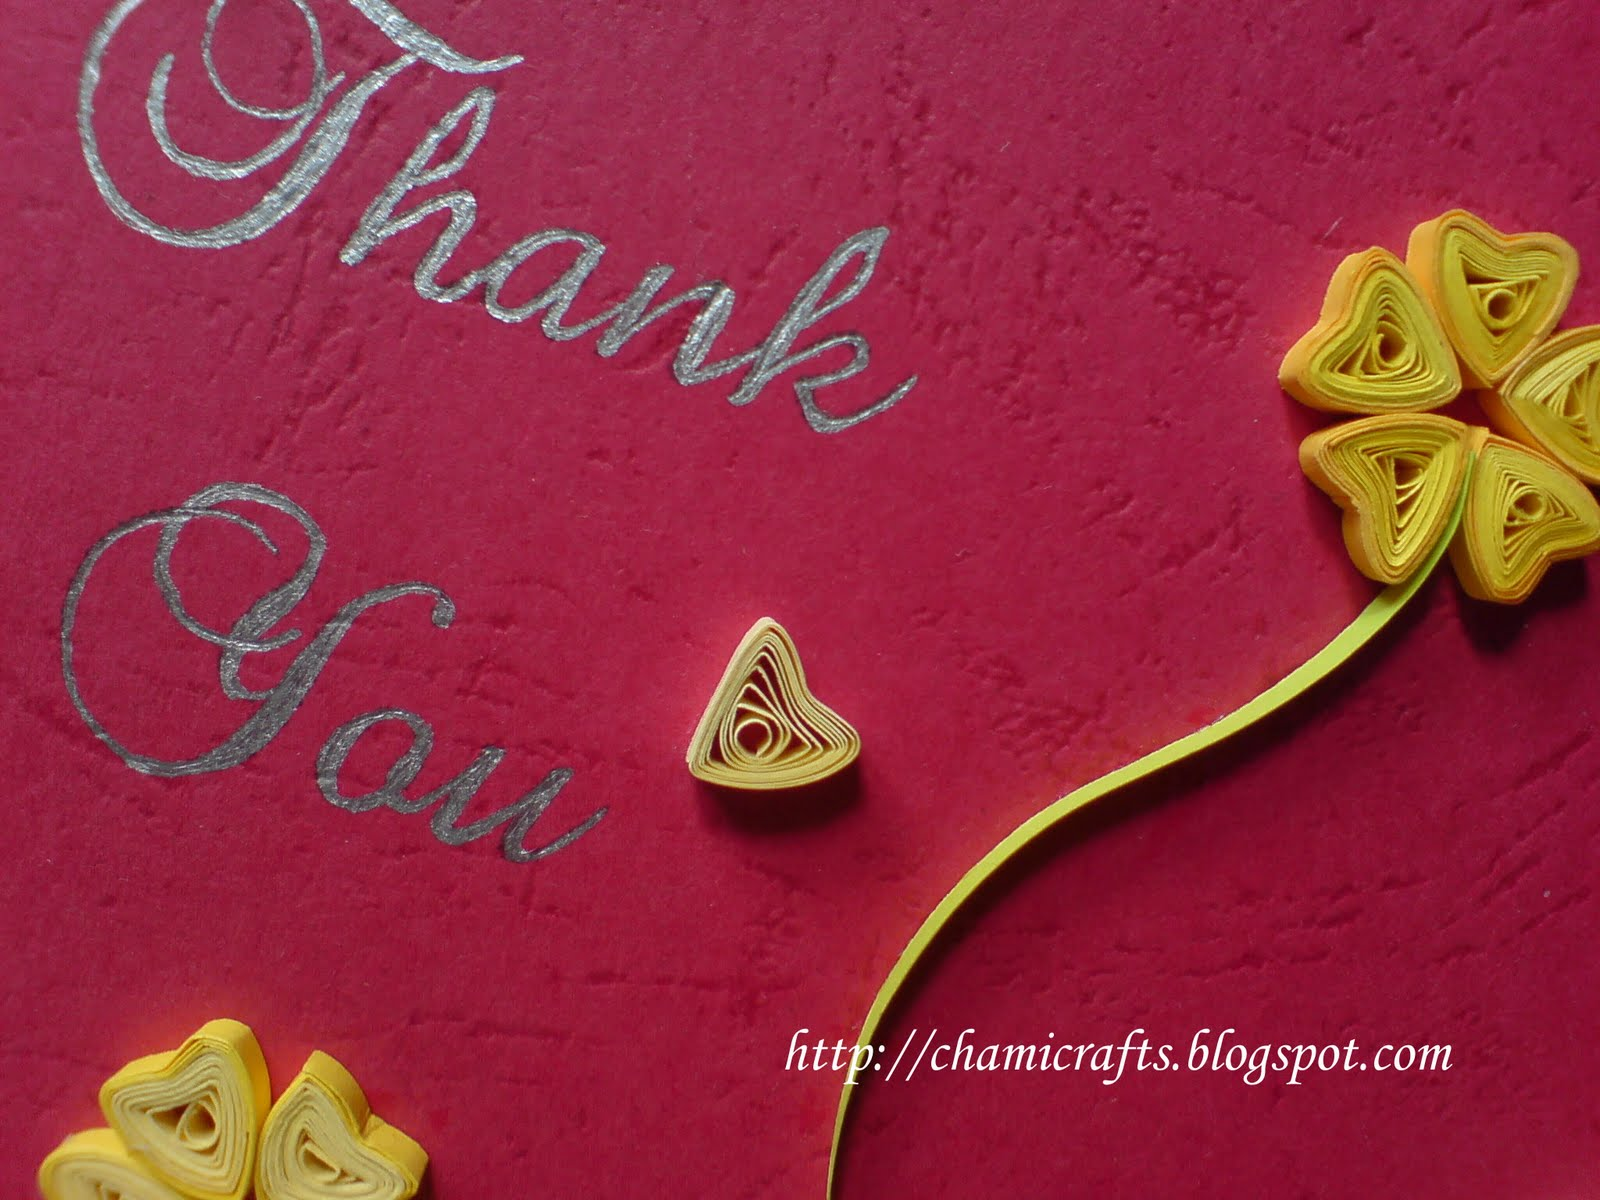 Chami Crafts Handmade Greeting Cards Quilled Thank You Card